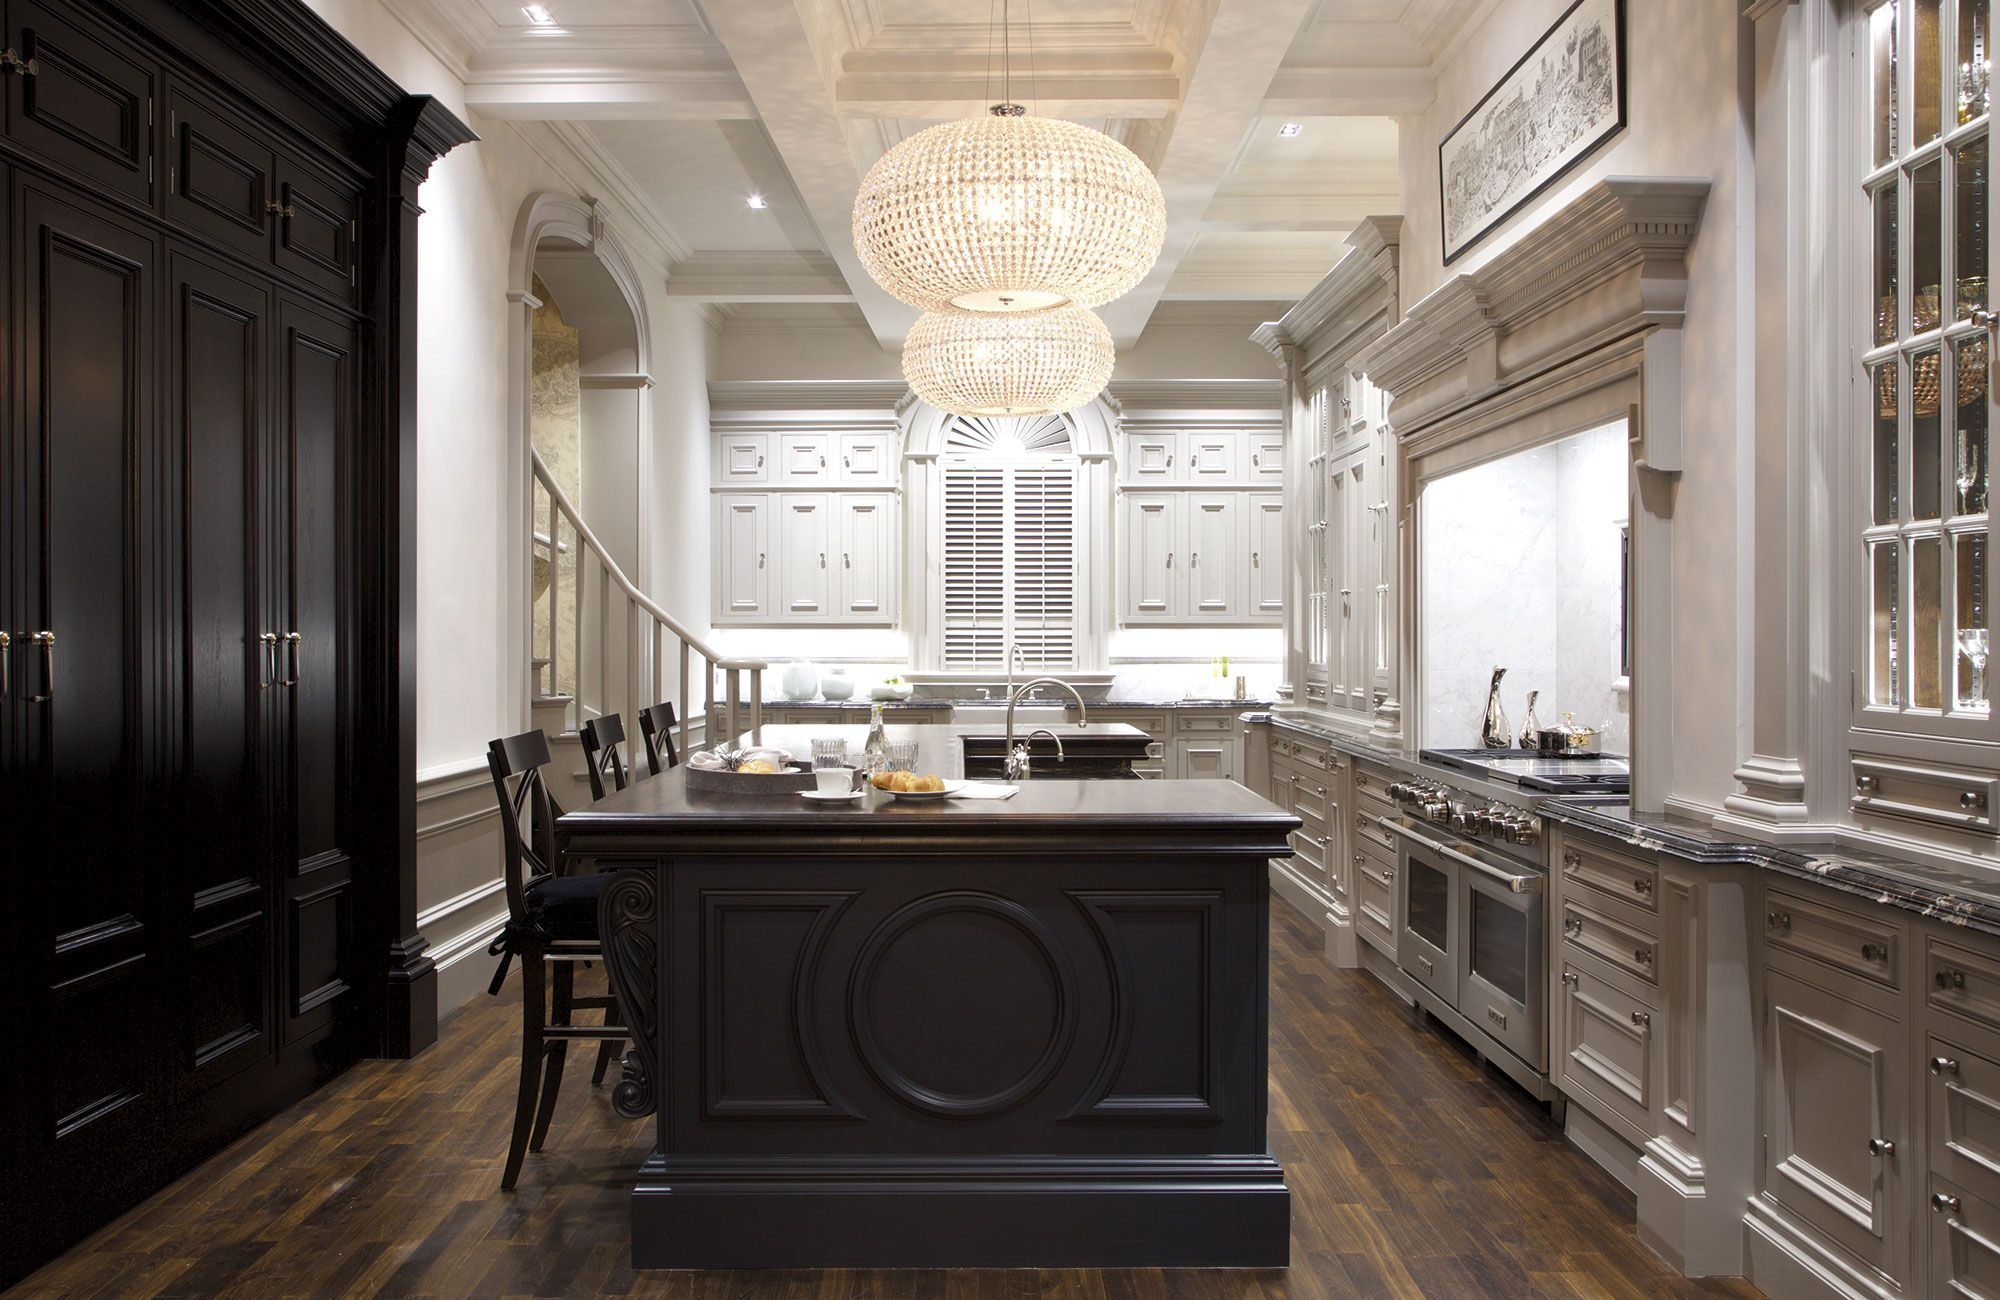 Mr Huxley S Kitchen Clive Christian Furniture Co Bespoke Luxury Interiors Clive Christian Kitchens Classic Kitchen Design Luxury Kitchen Design